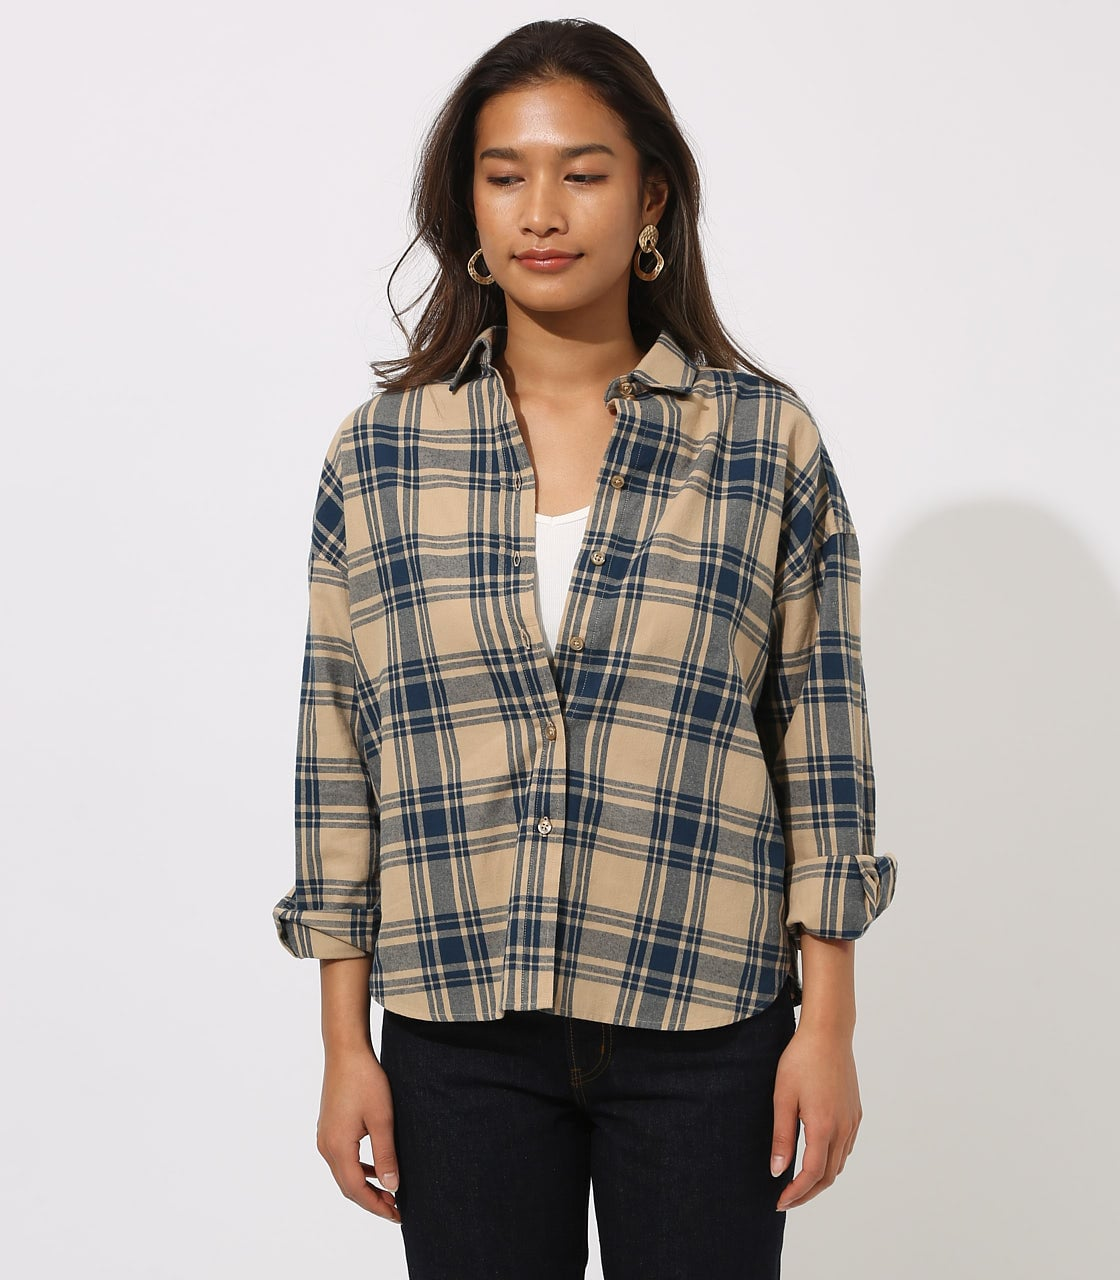 CHECK DROP SHOULDER SHIRT 詳細画像 柄BEG 5